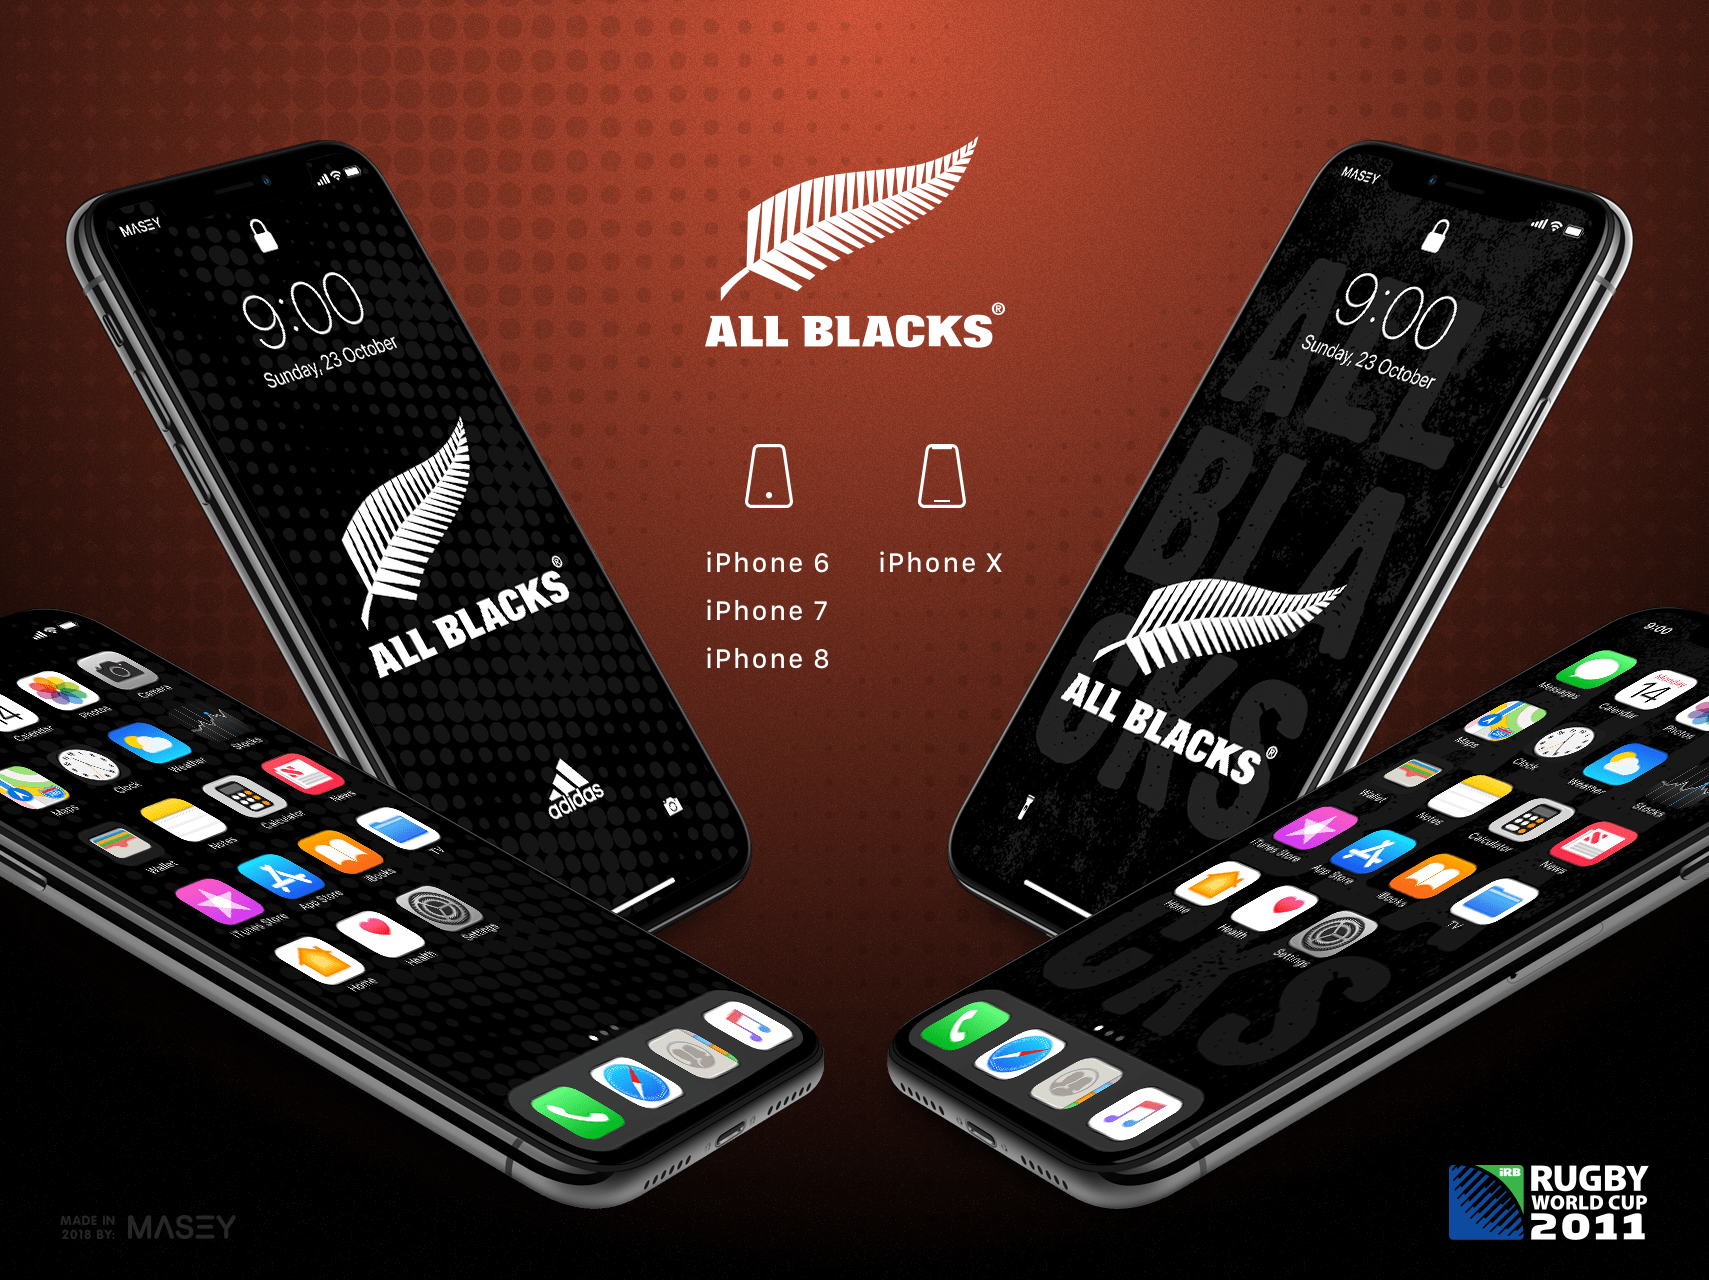 New Zealand All Blacks iPhone Wallpaper